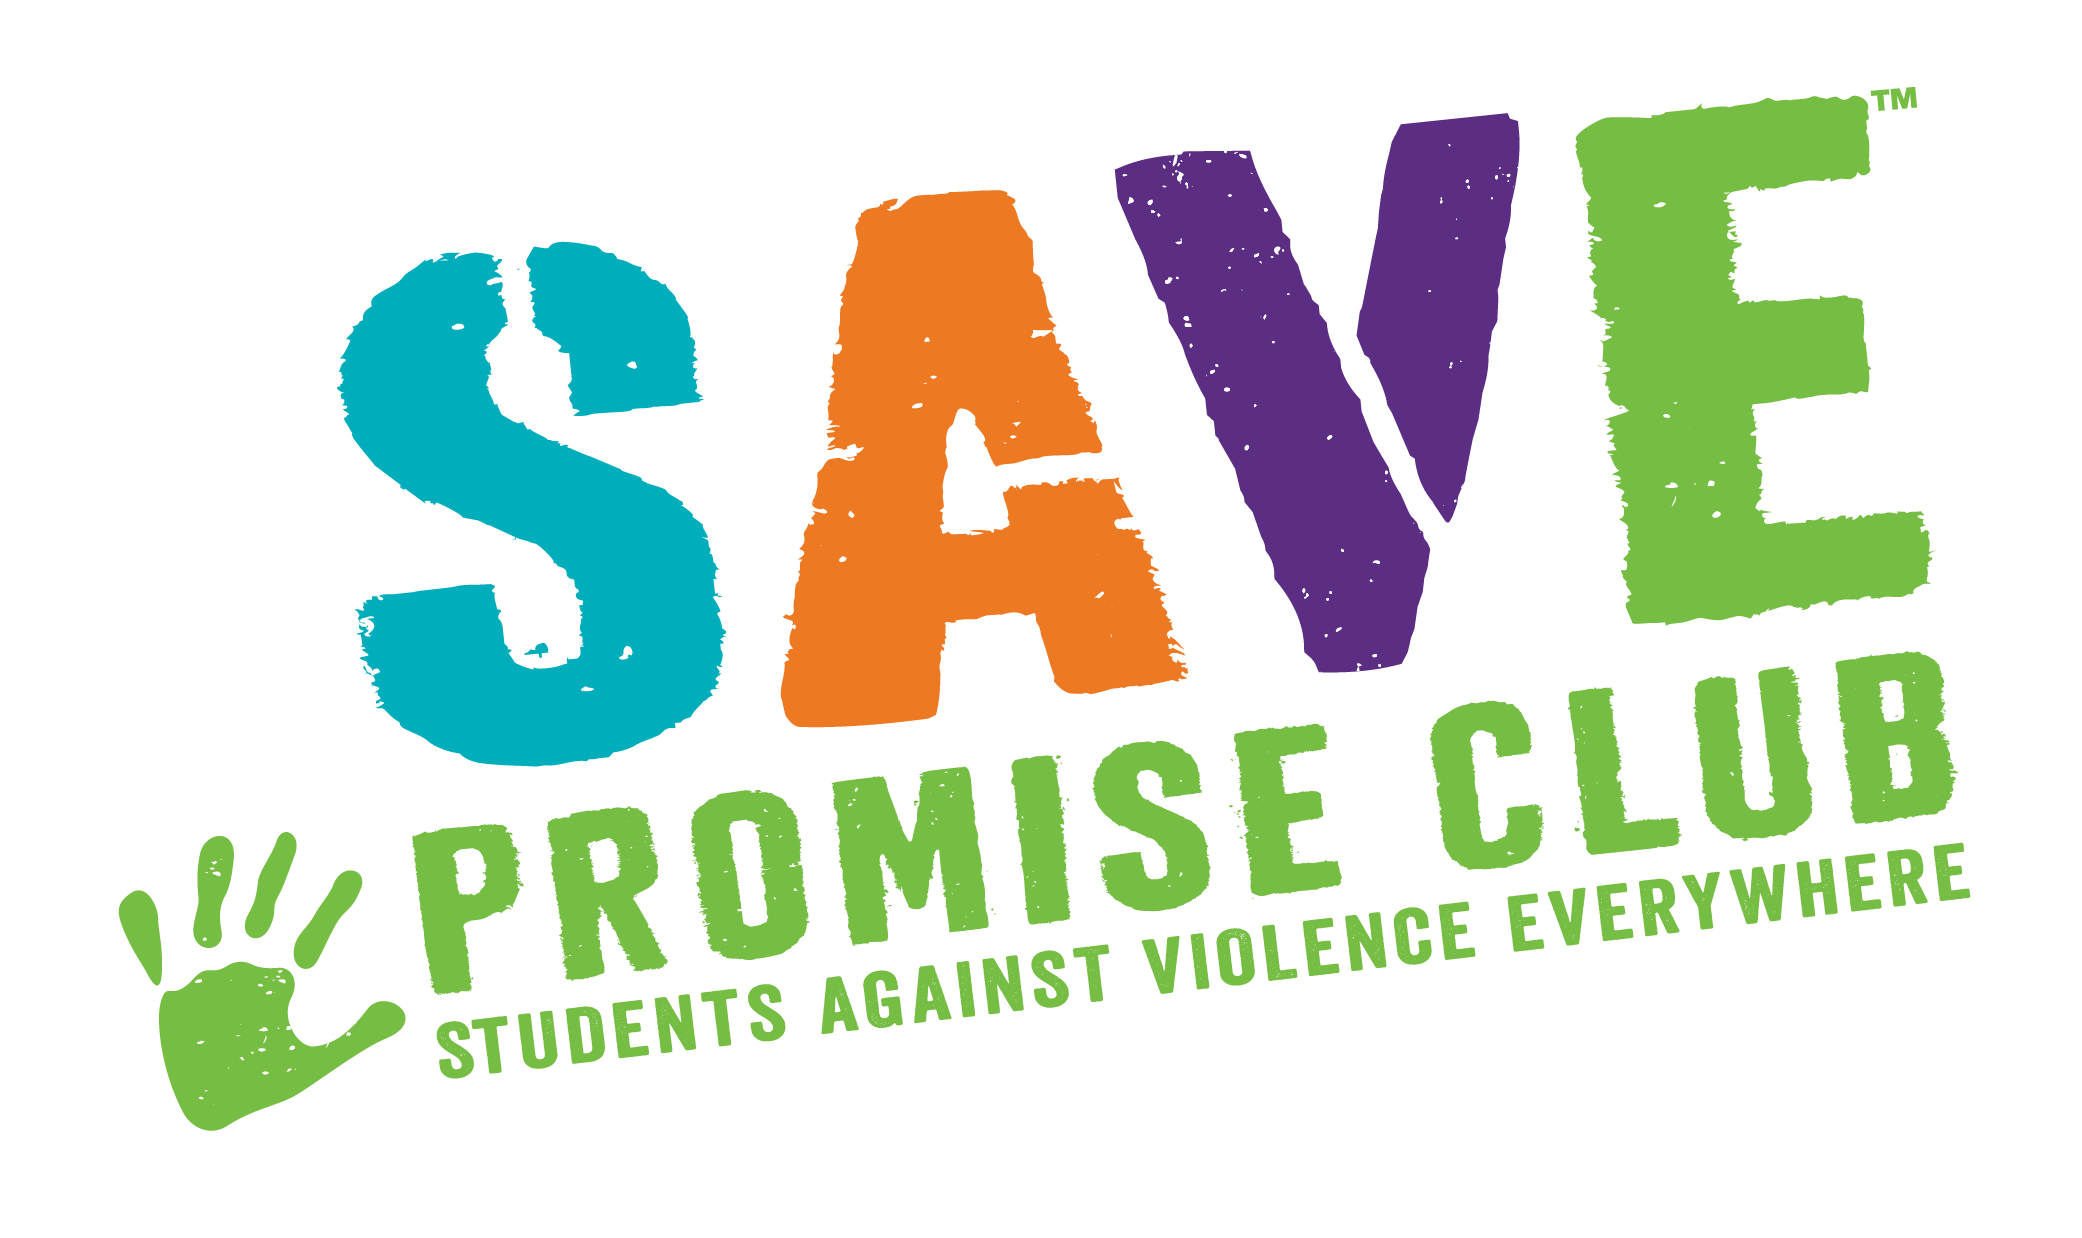 SAVE Promise Club Logo